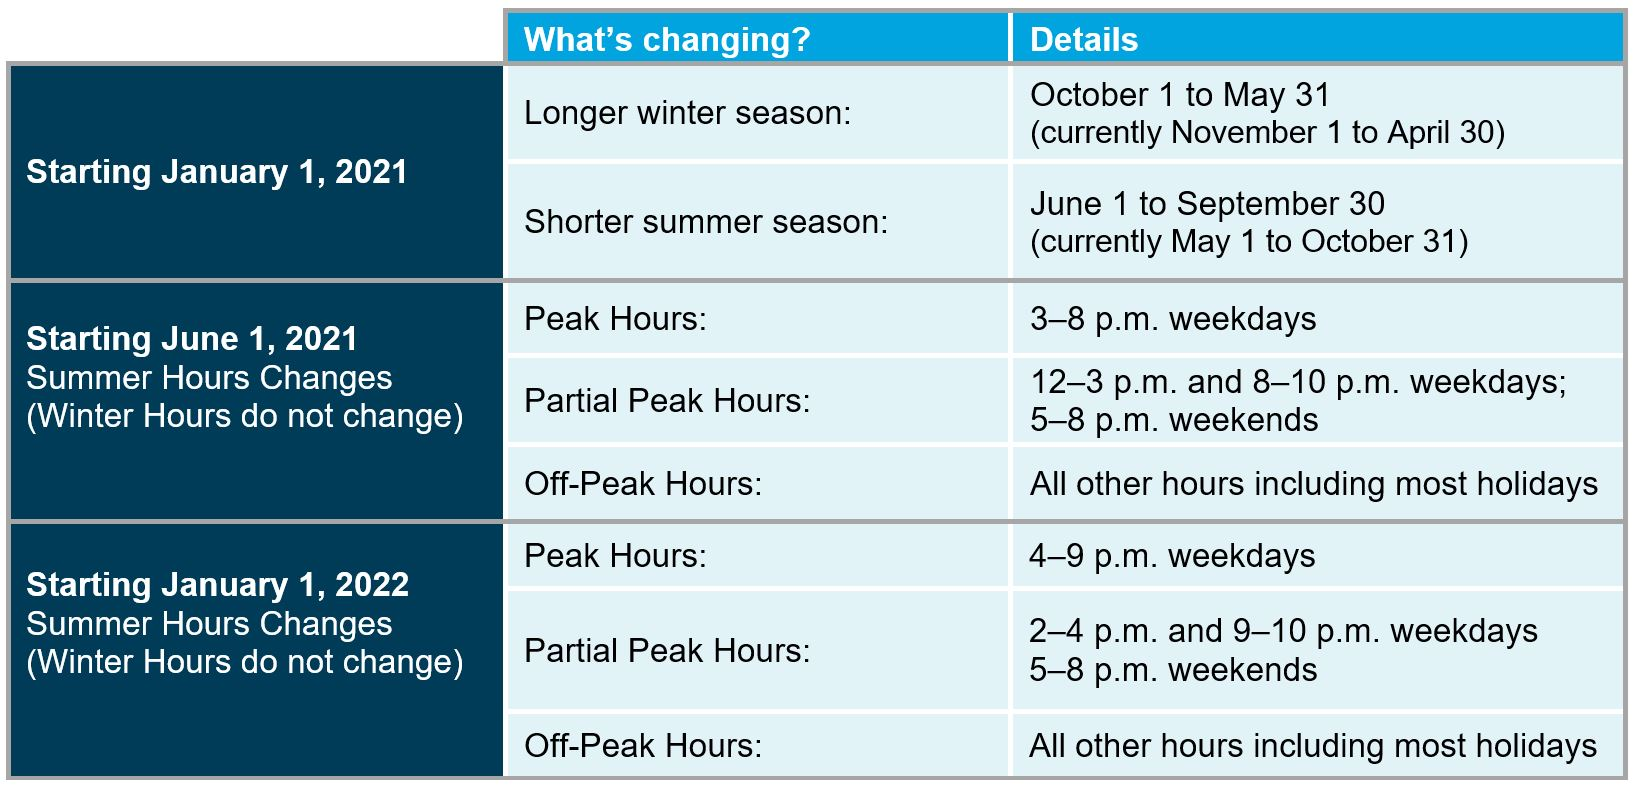 Timeline of Time -of-Use Plans (E-6) and (EM-TOU) Season dates, Peak, Partial Peak, and Off-Peak hours.